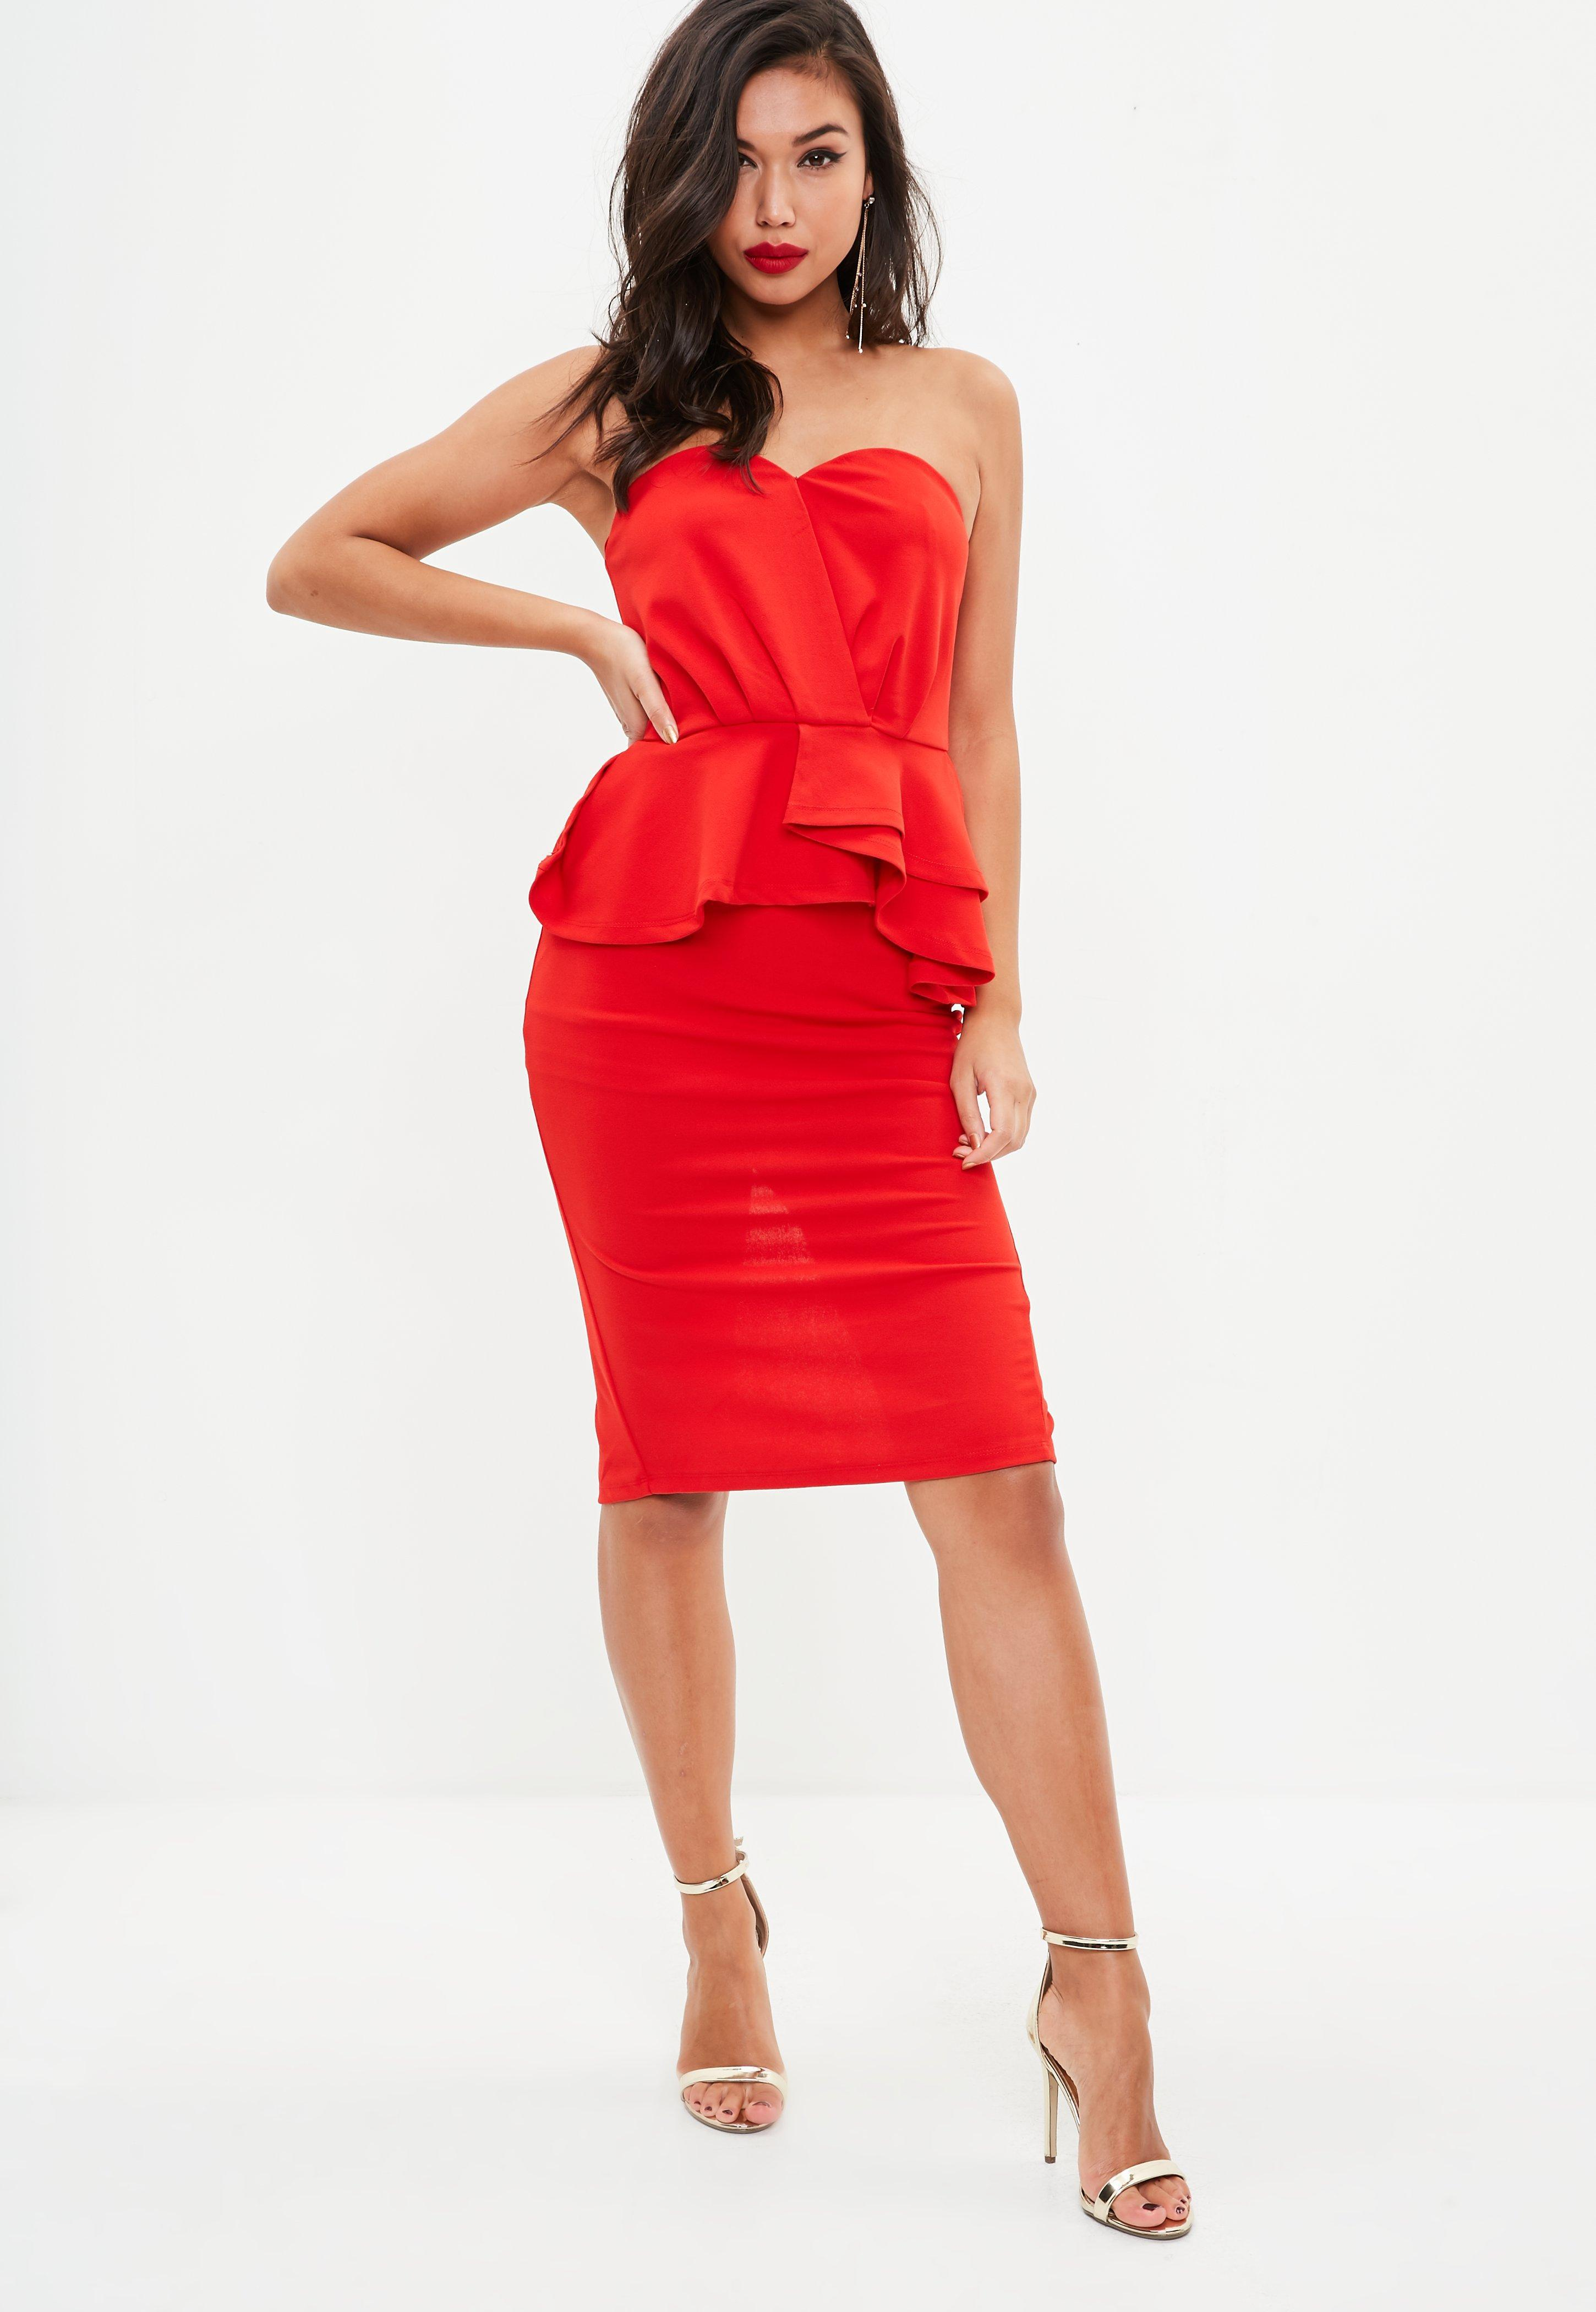 Missguided. Women's Red Bandeau Frill Midi Dress